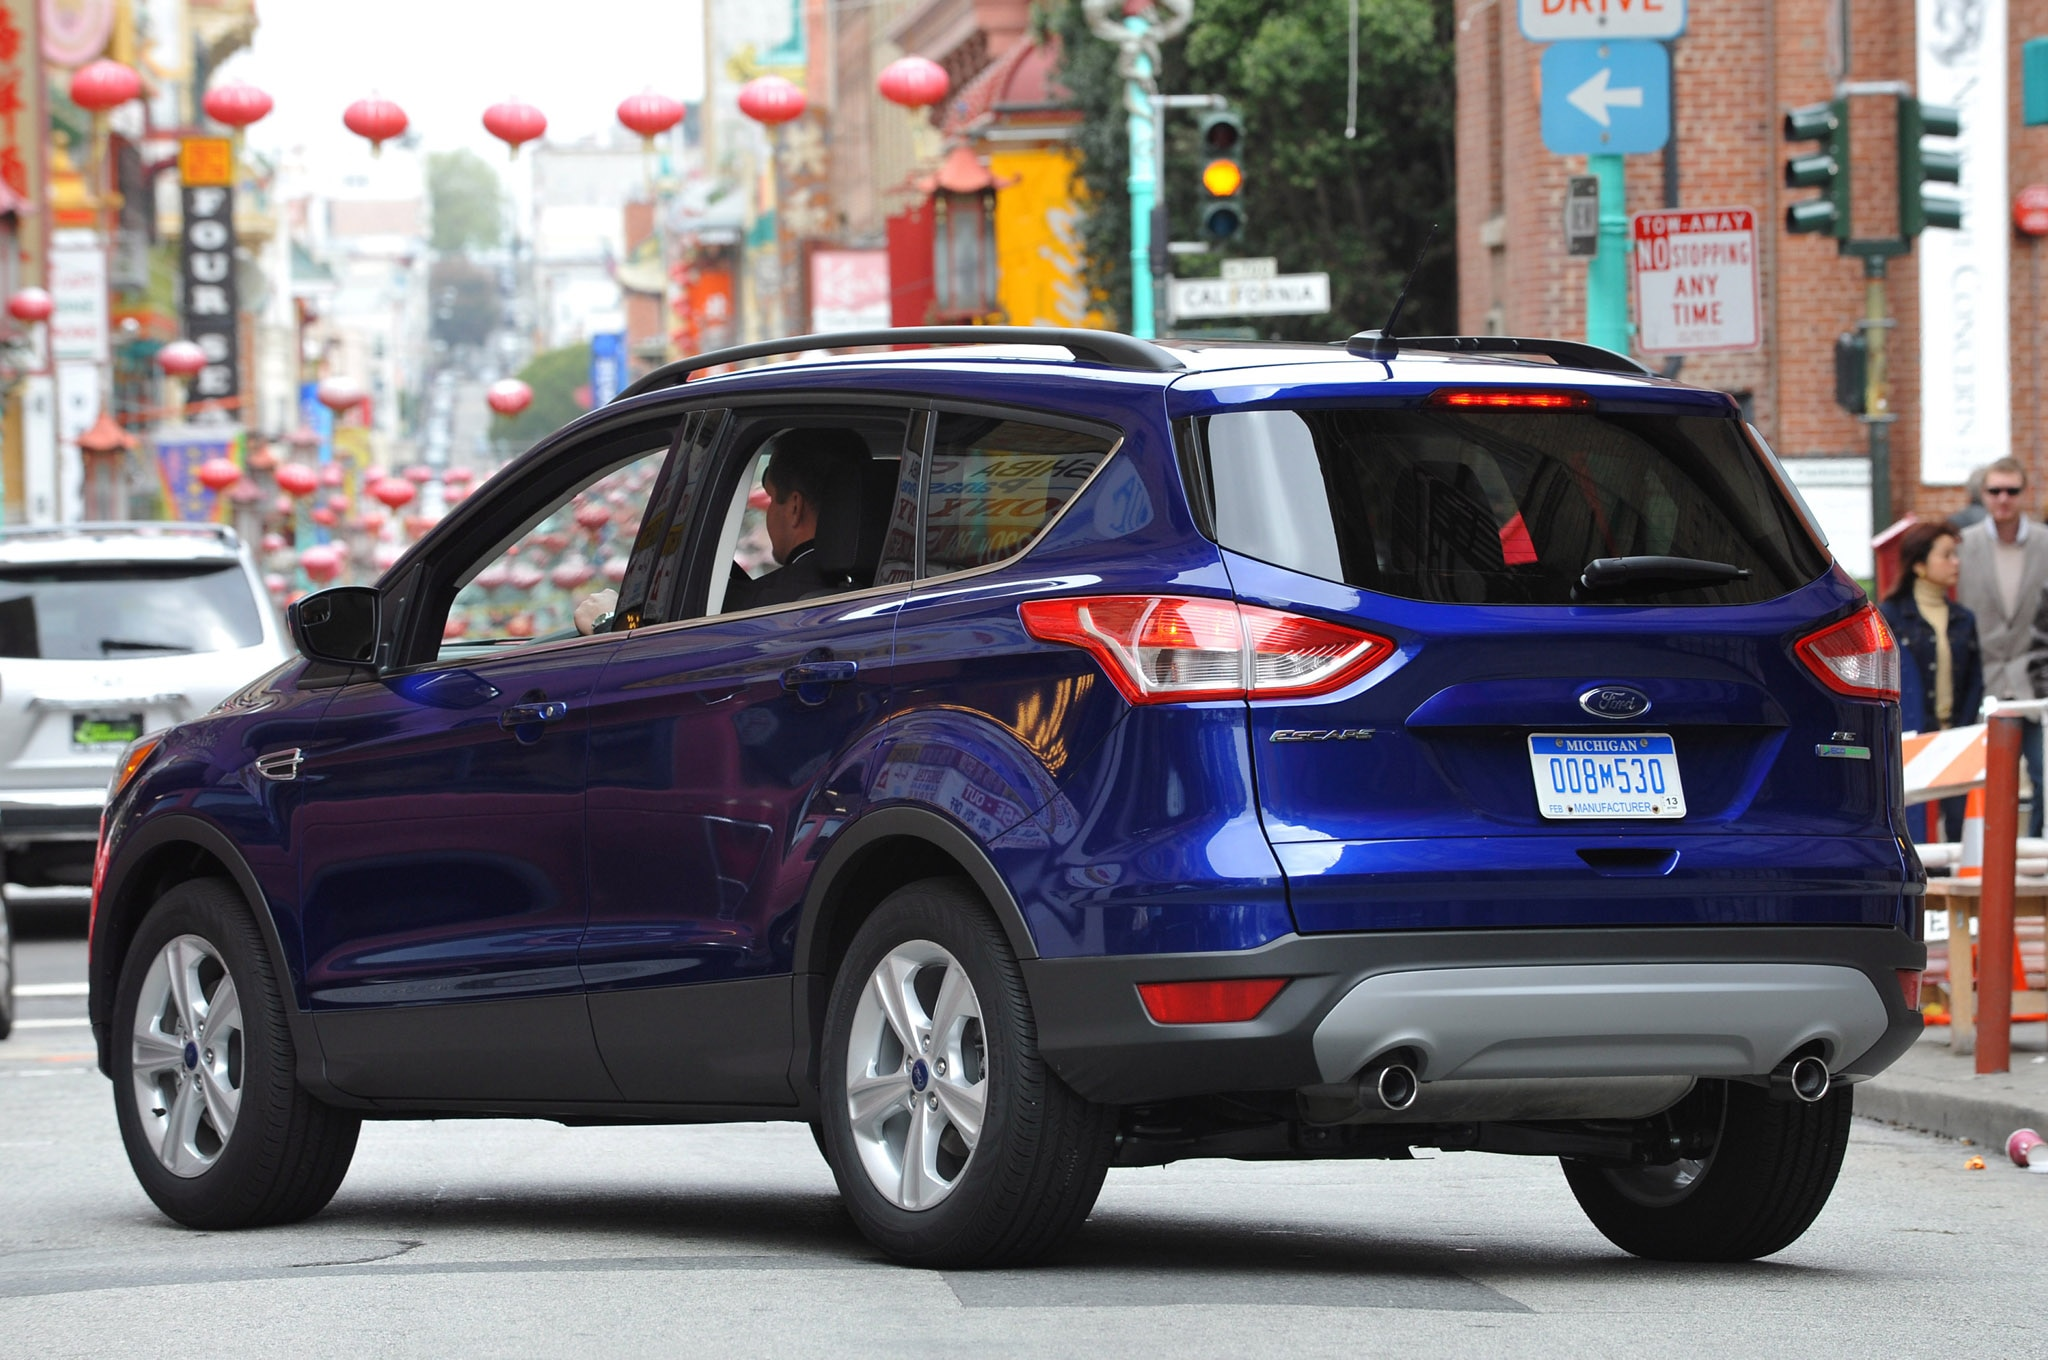 2013 ford escape recalled for fire risks. Black Bedroom Furniture Sets. Home Design Ideas